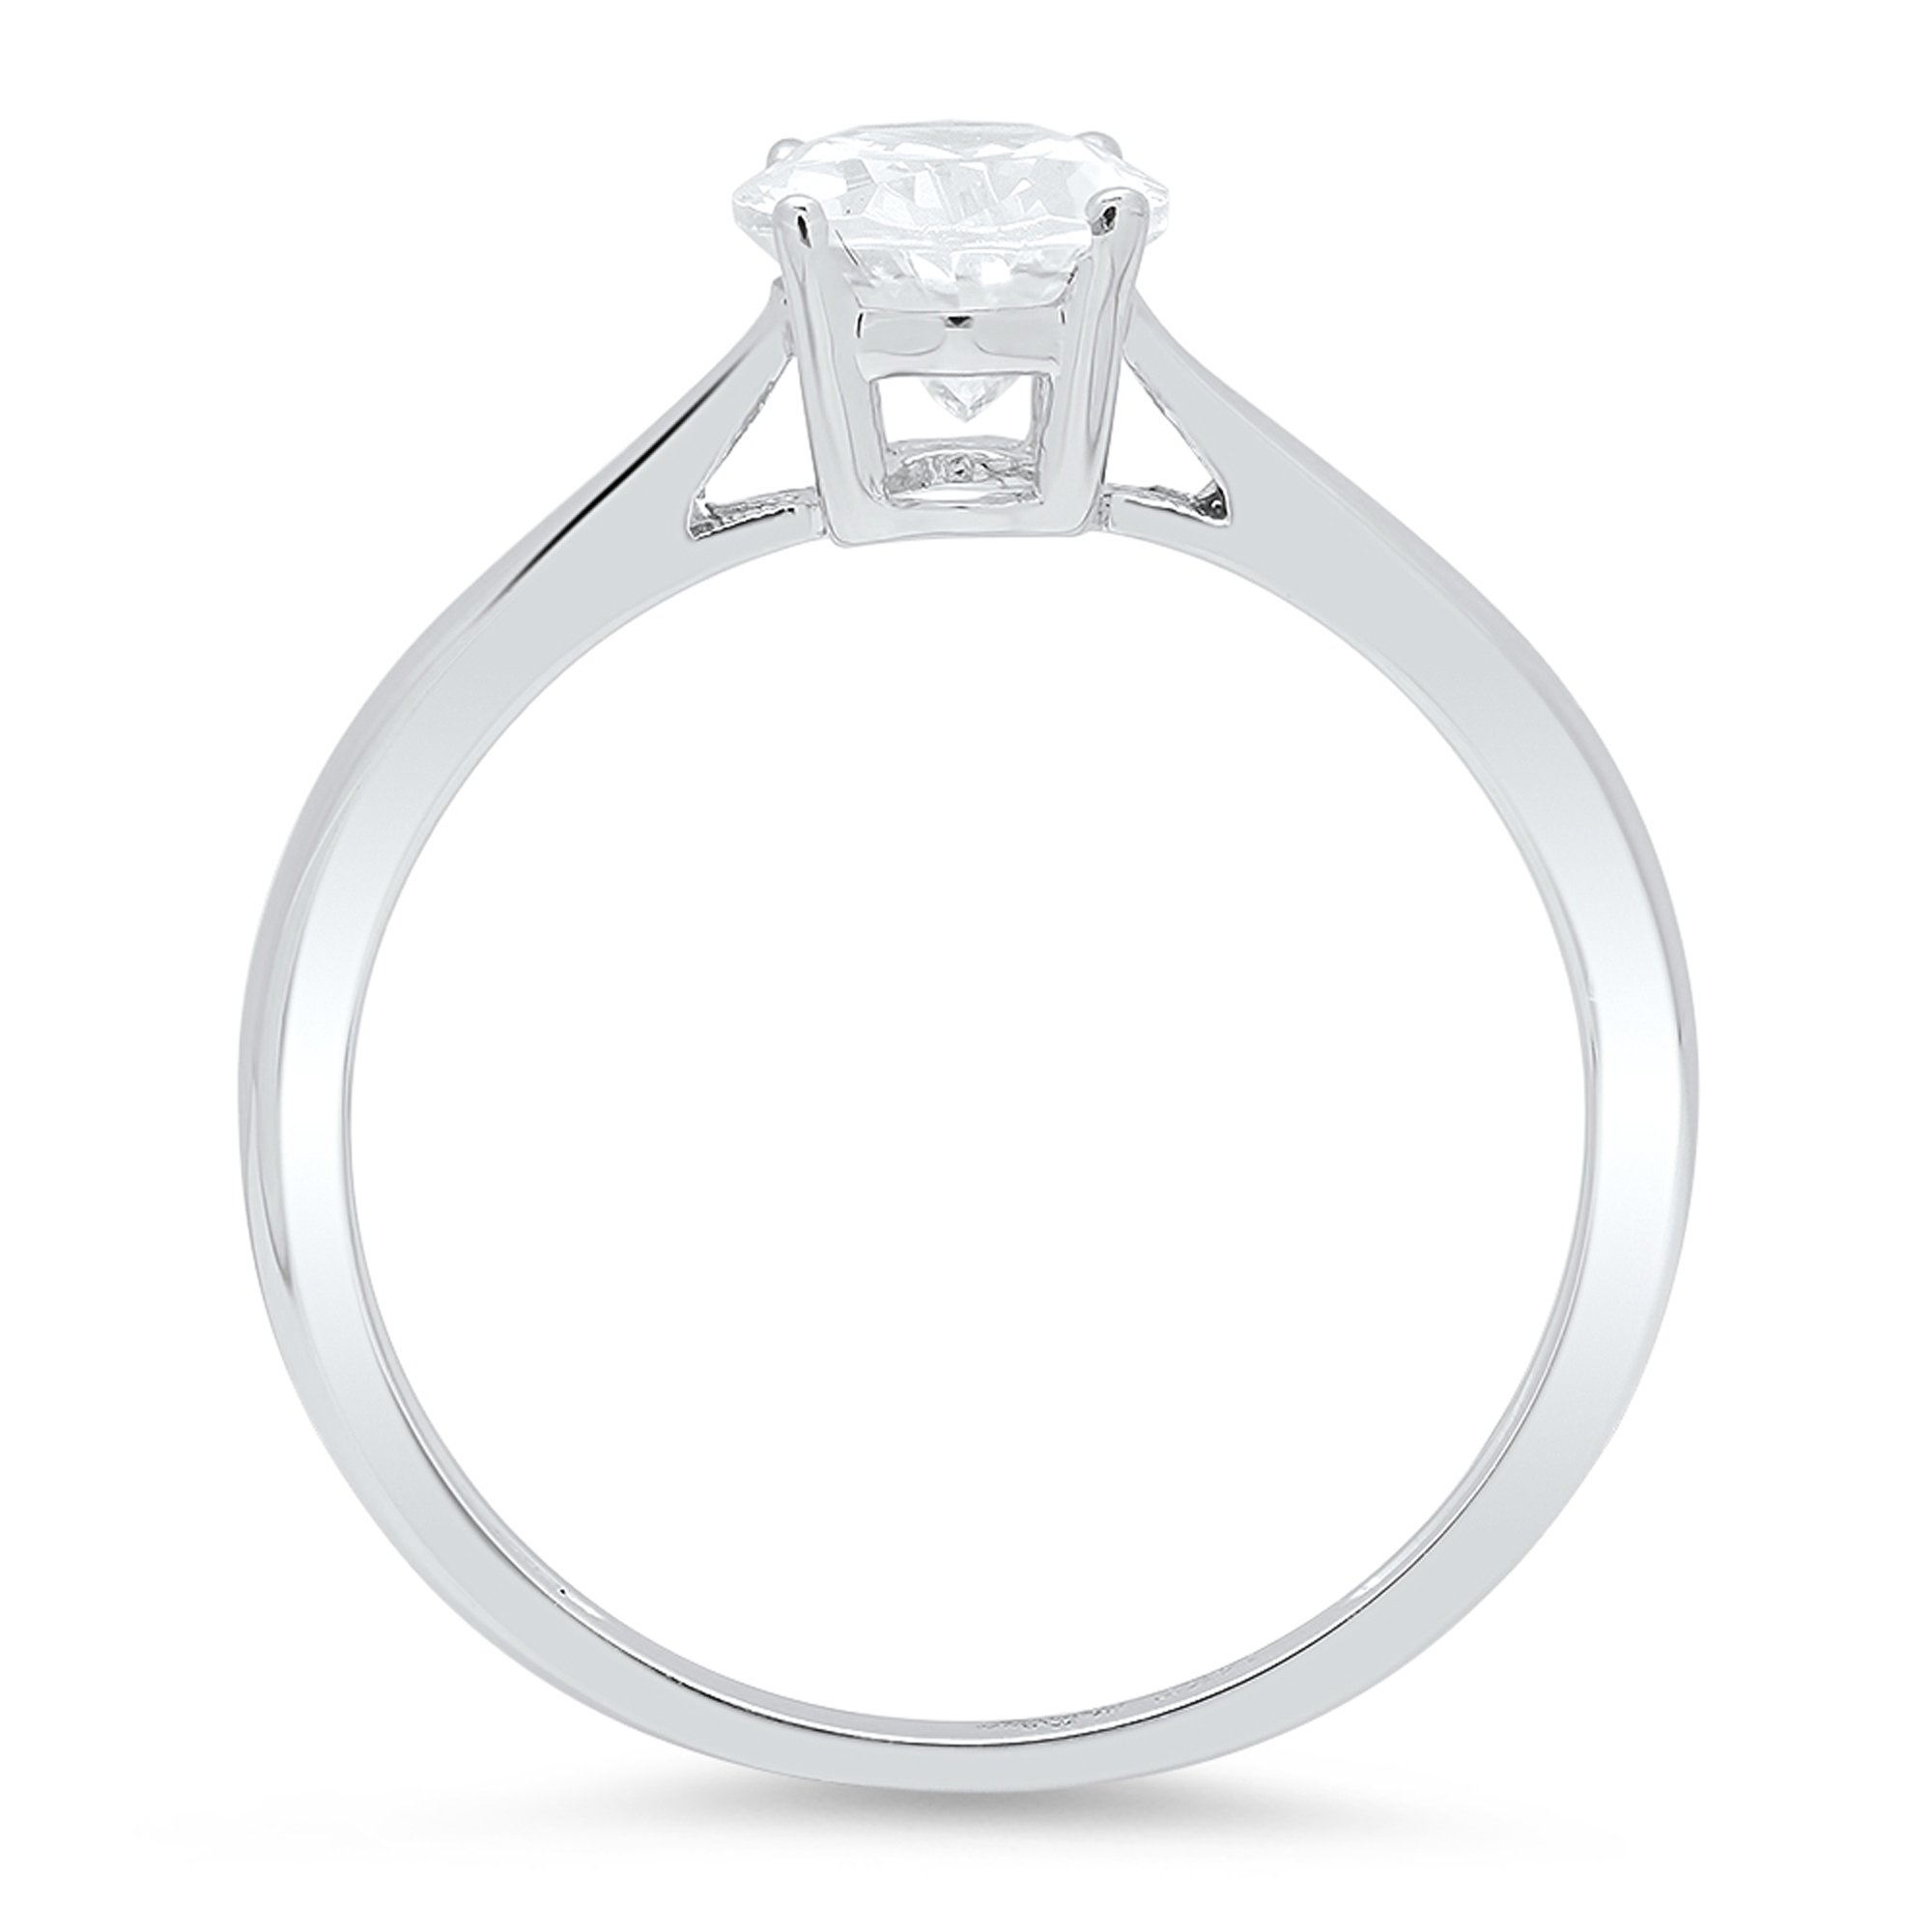 Clara Pucci Brilliant Oval Cut Solitaire Engagement Wedding Promise Bridal Ring in Solid 14k White Gold, 0.85CT, Size 10 by Clara Pucci (Image #2)